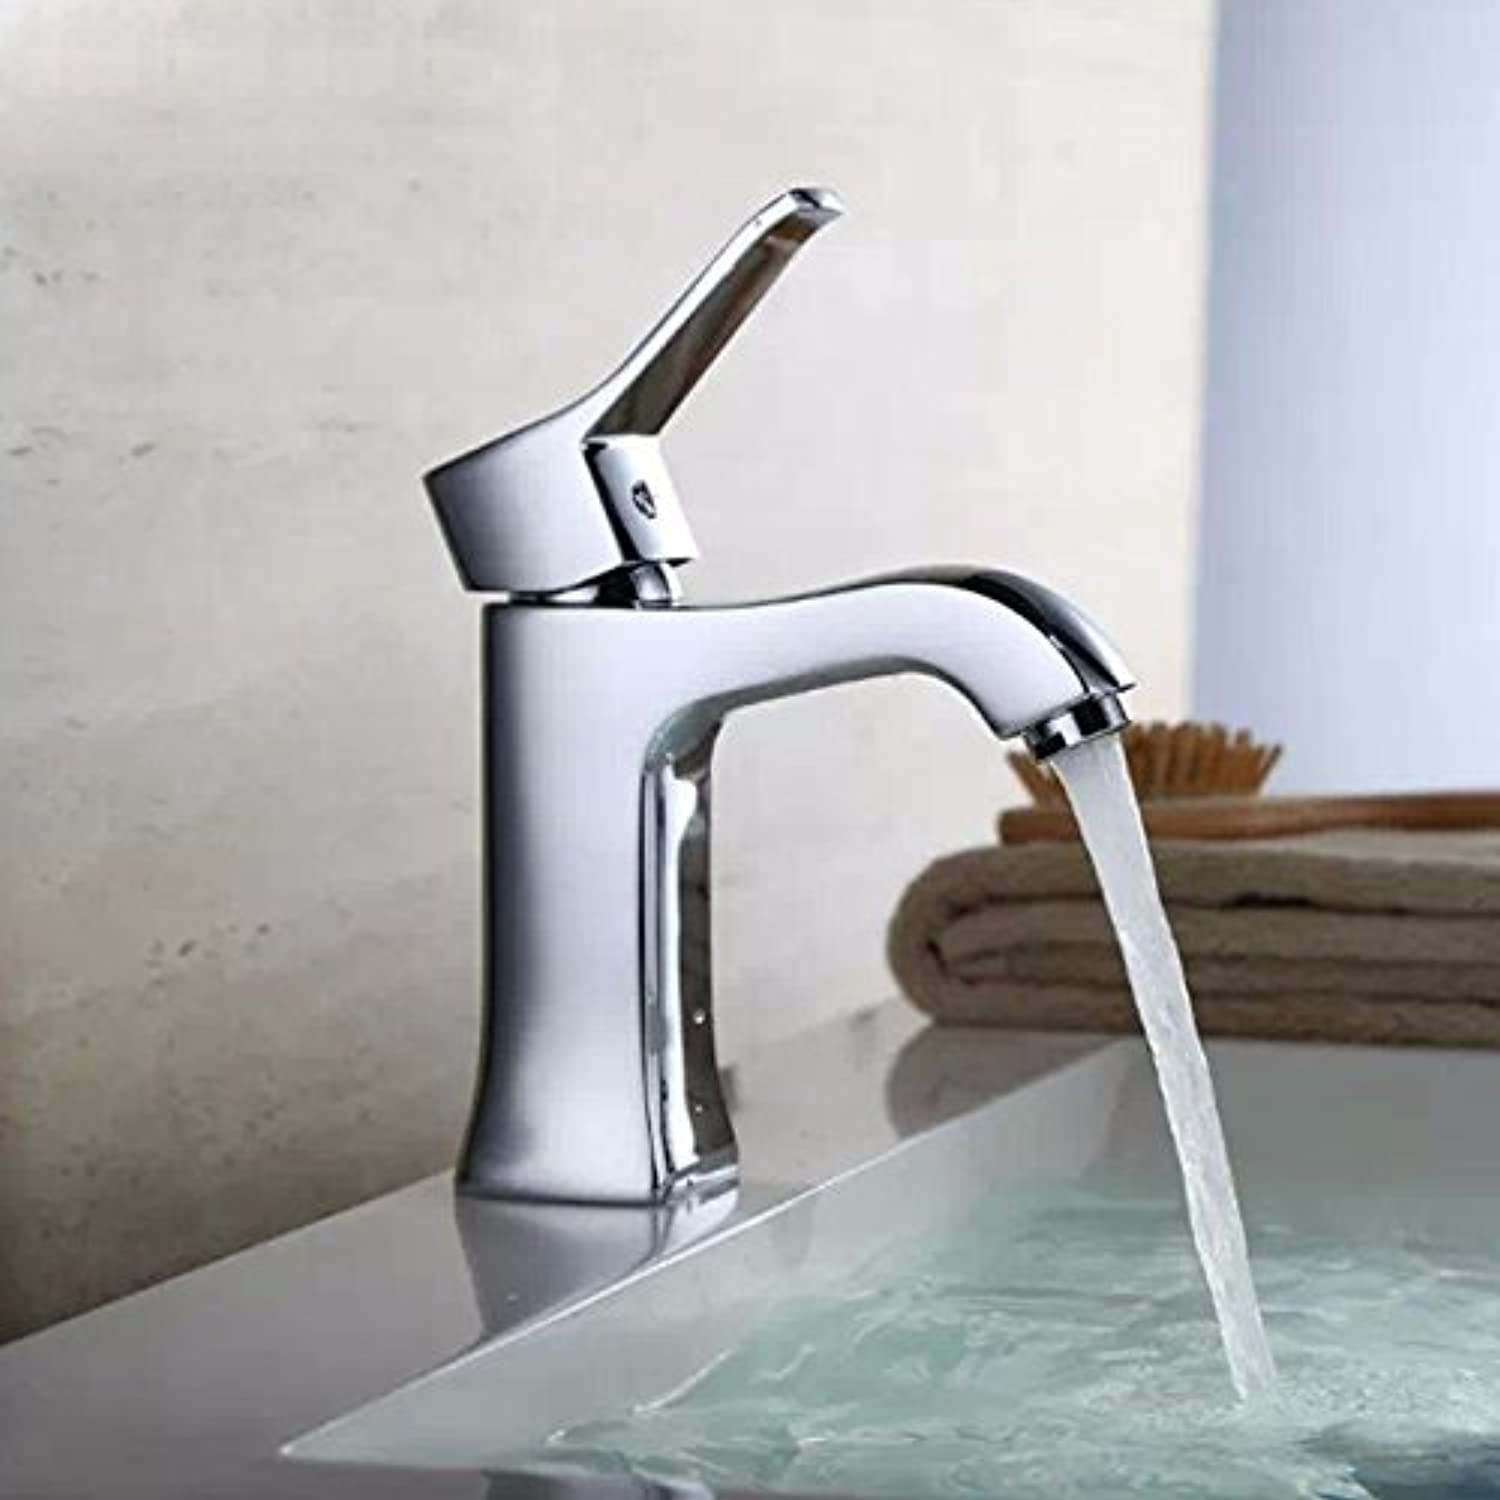 Hlluya Professional Sink Mixer Tap Kitchen Faucet Basin taps square mixing valve water basin